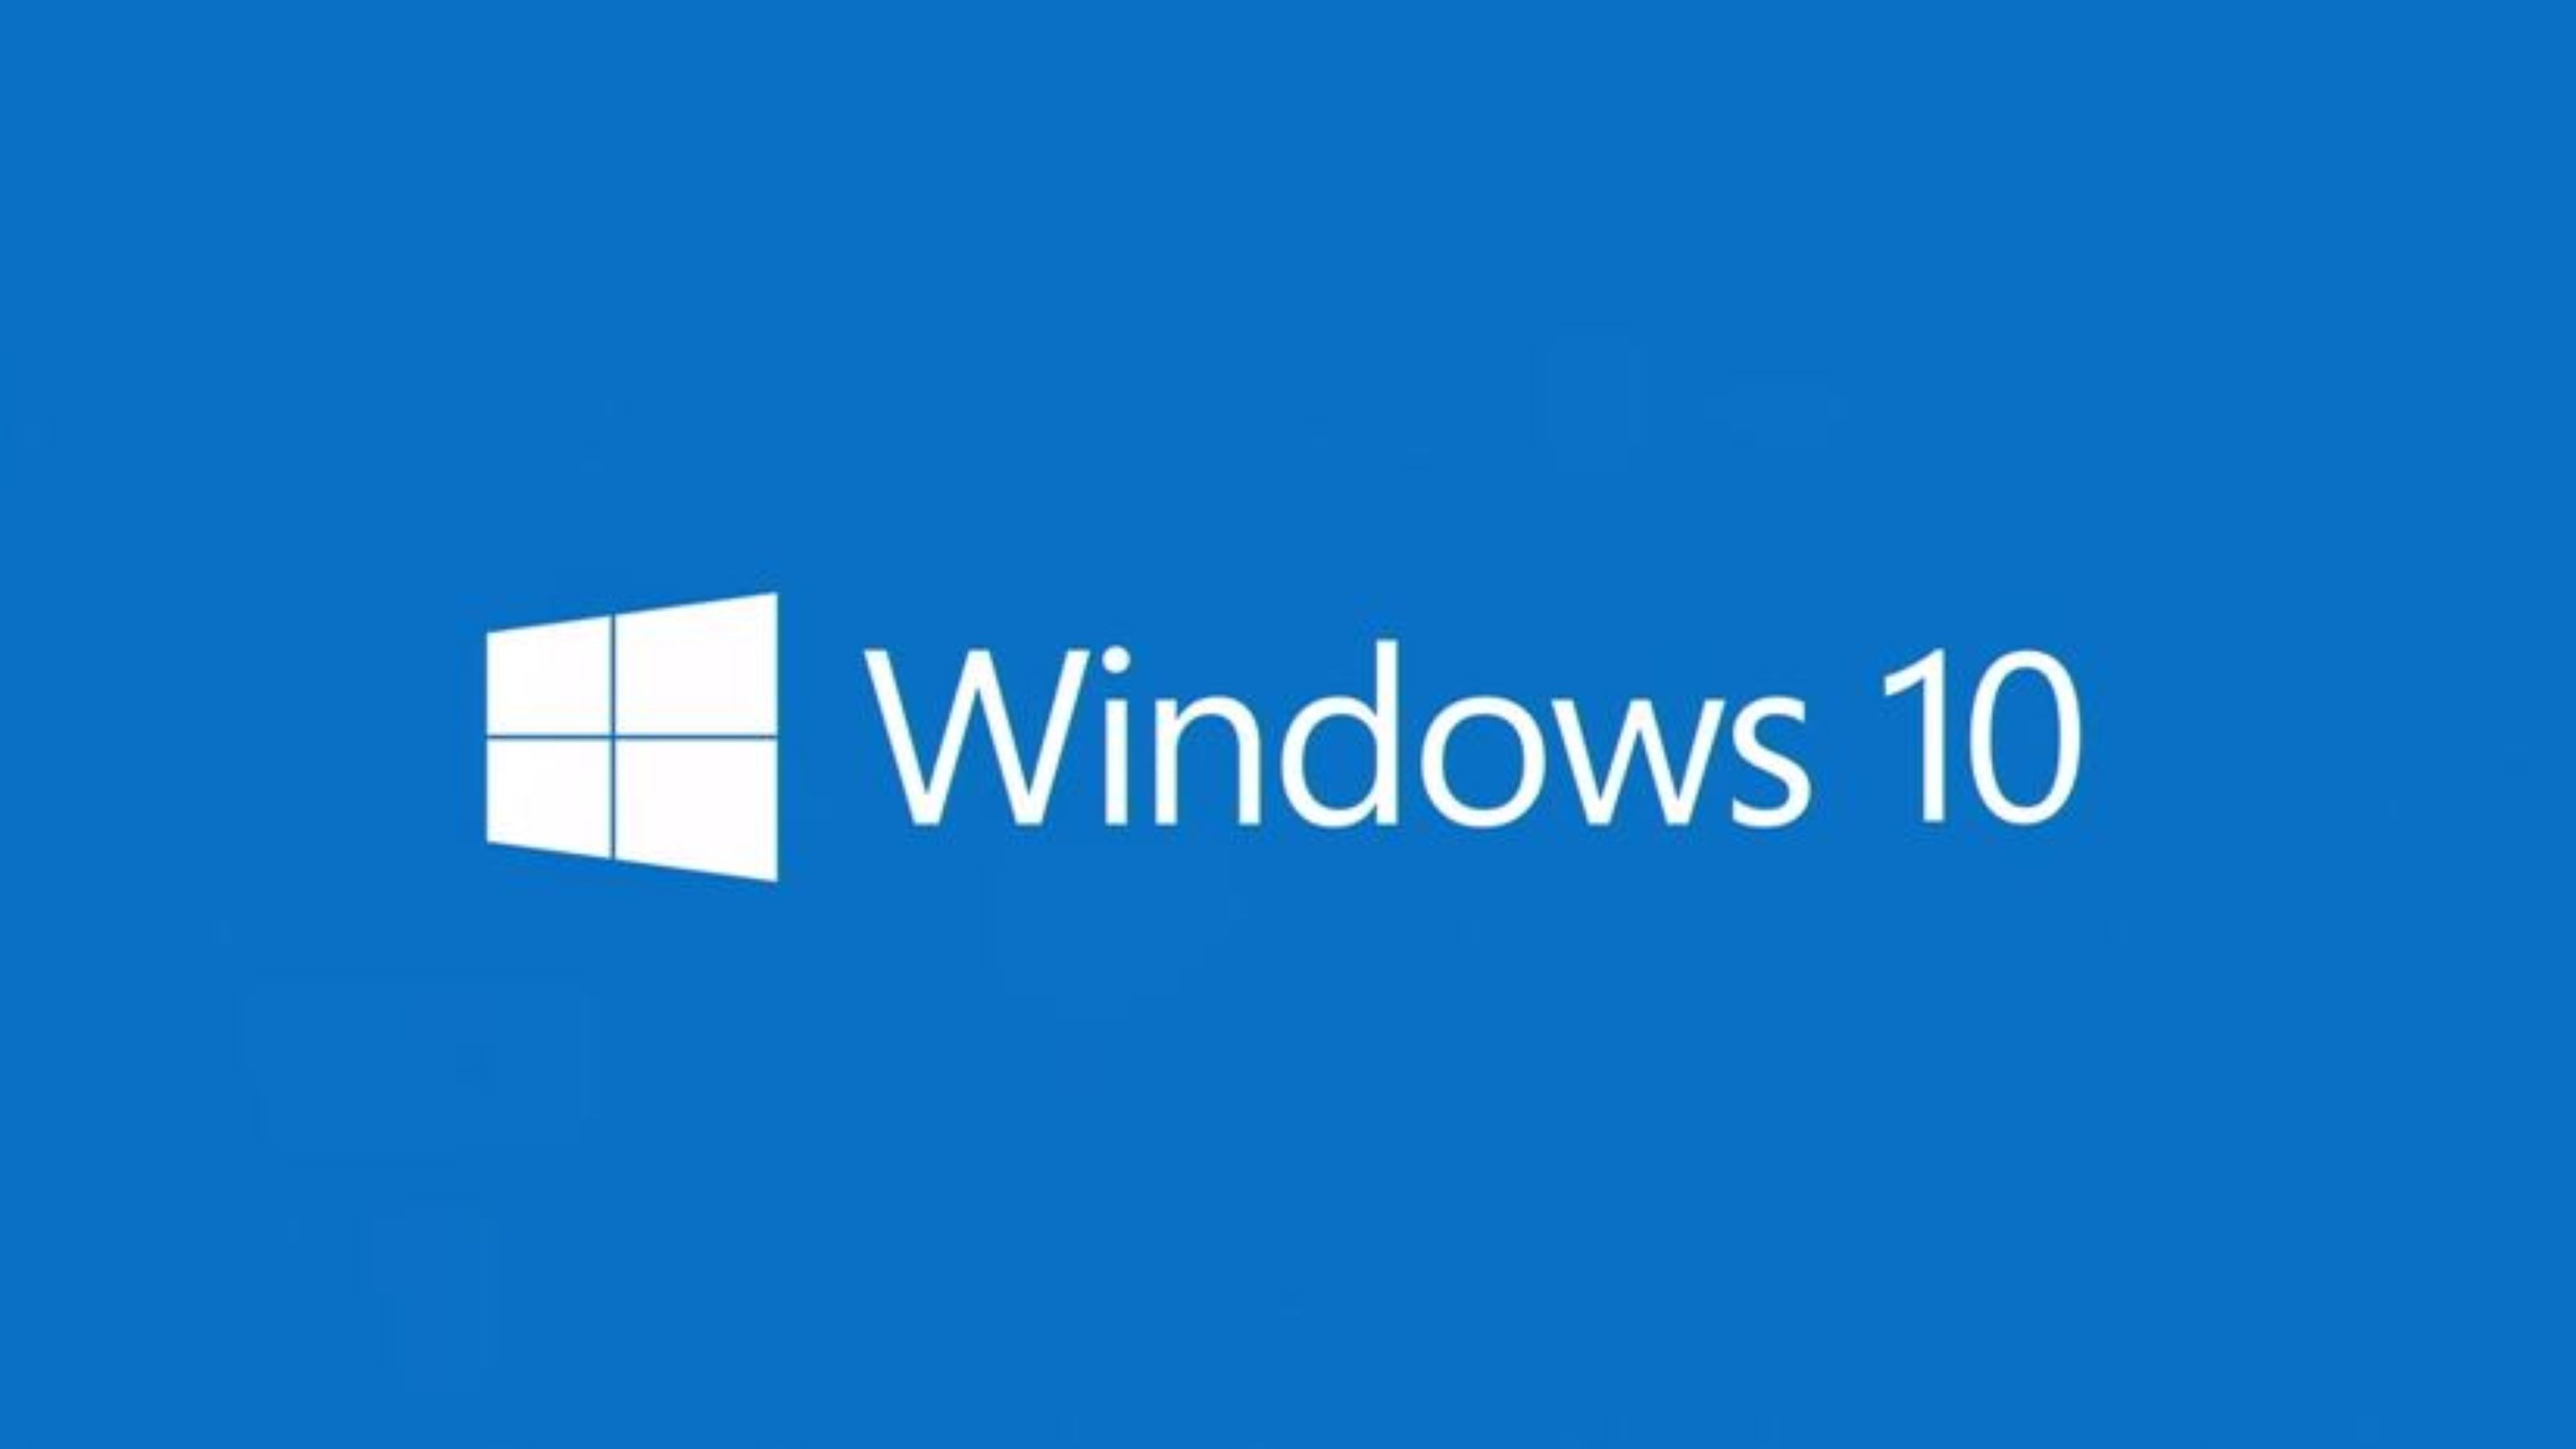 windows 10 logo图片